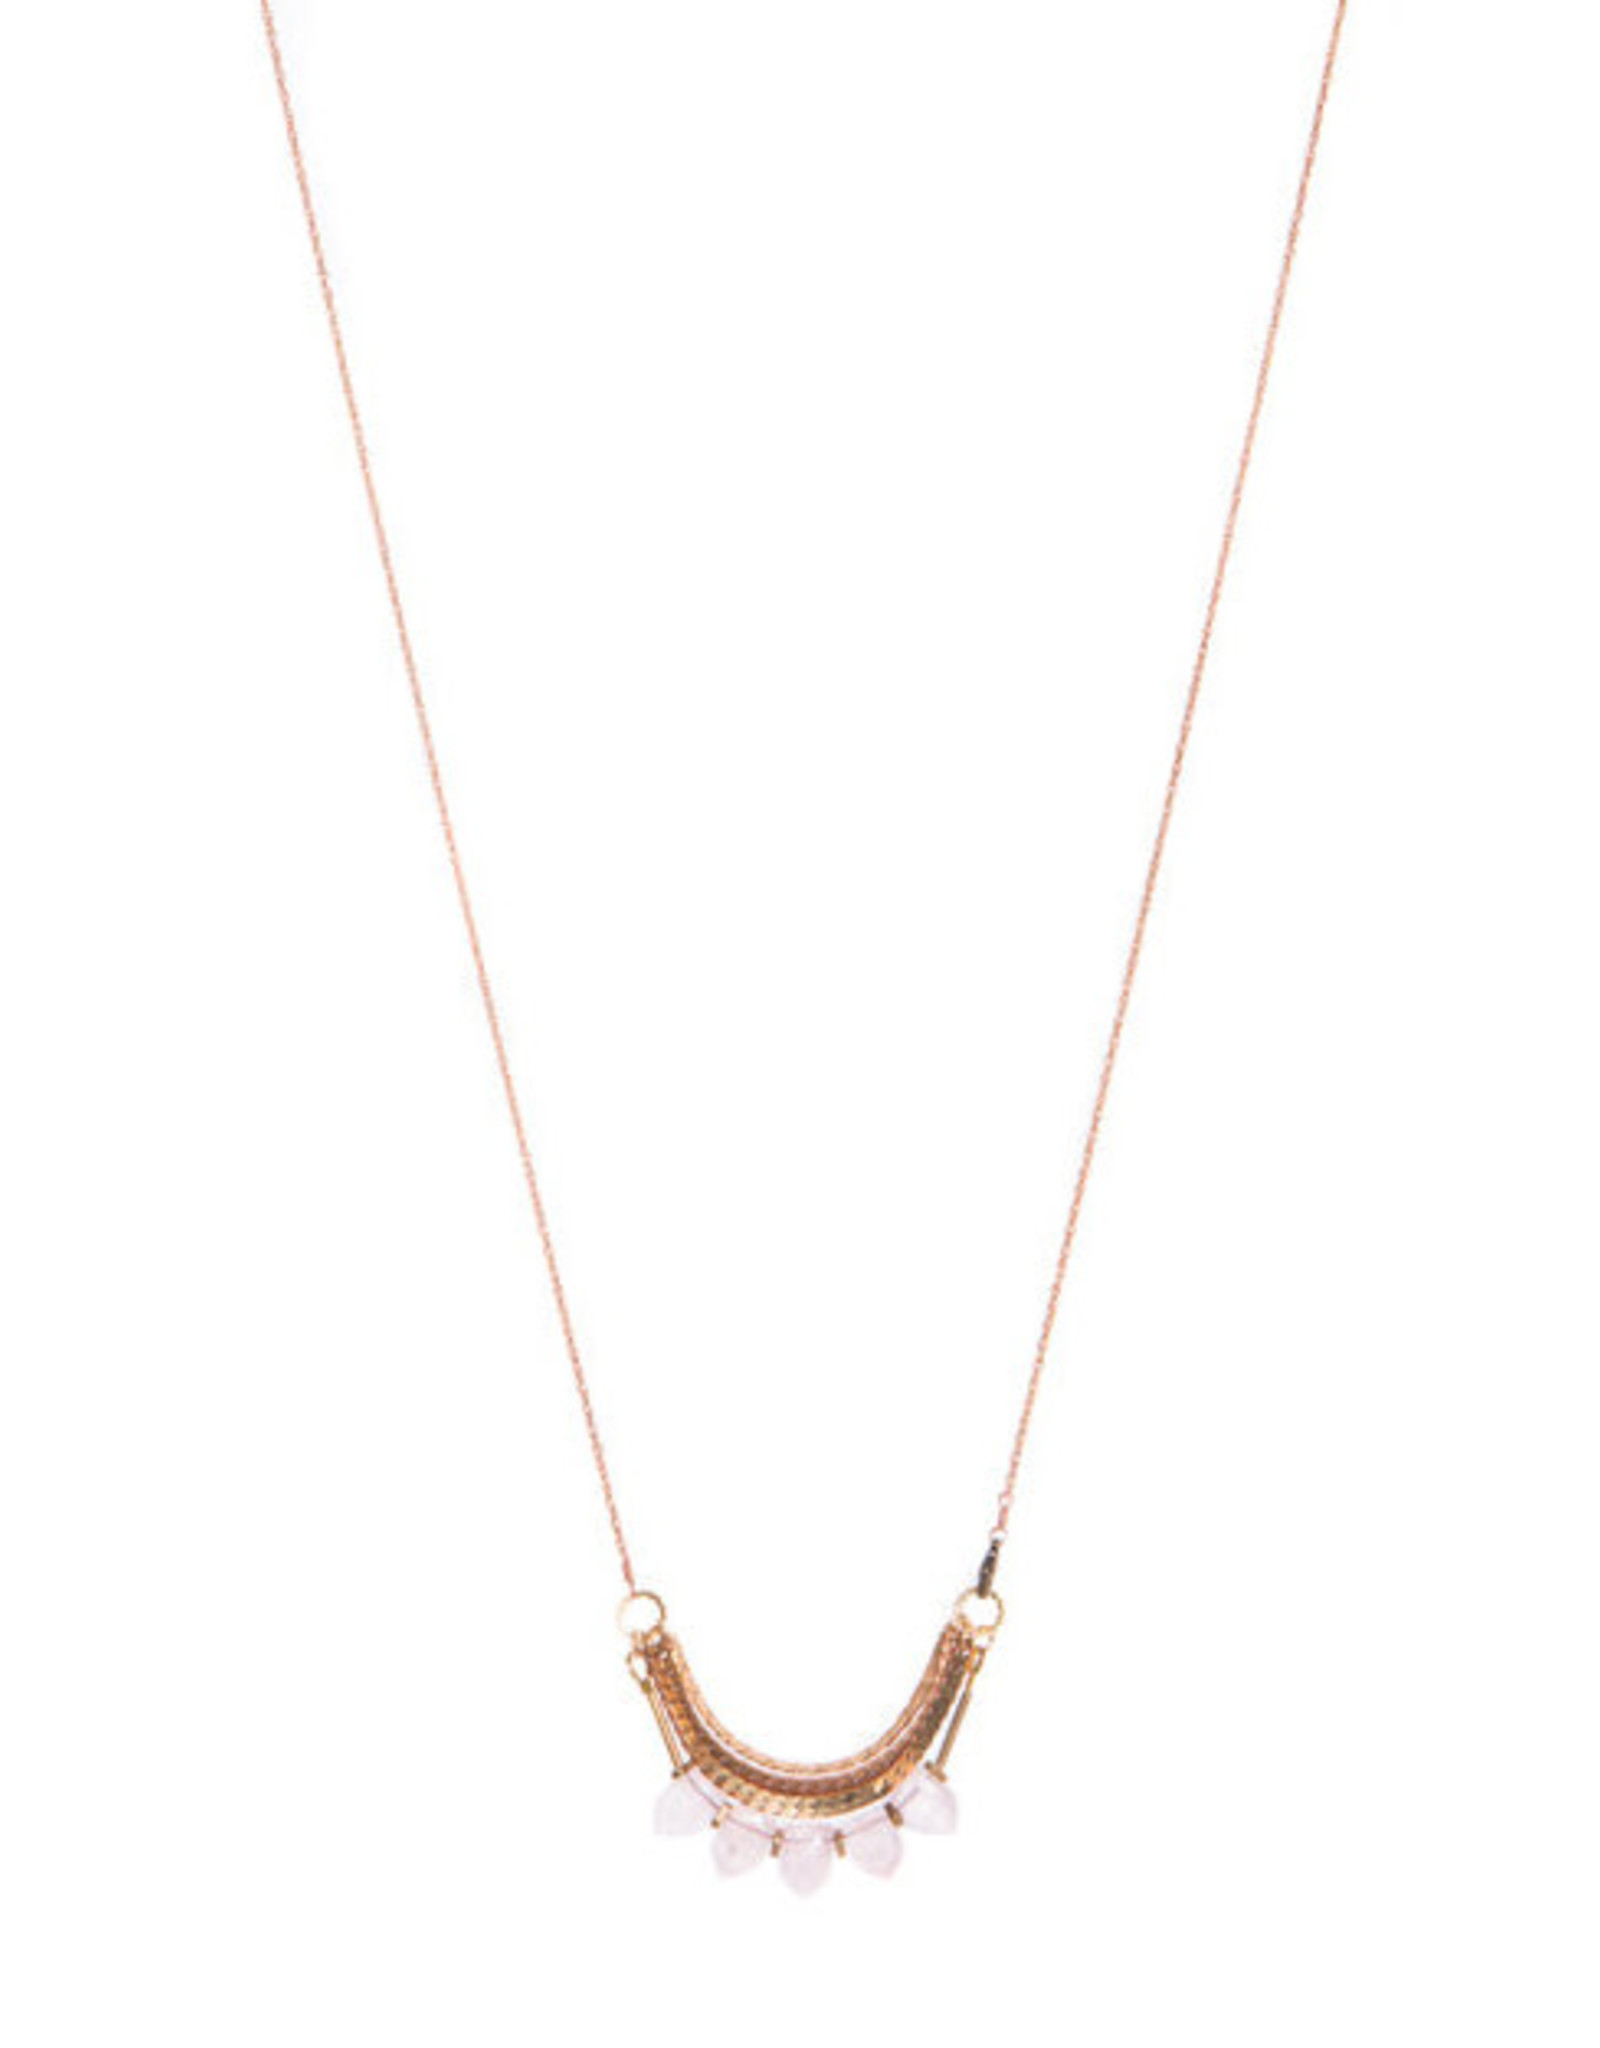 Hailey Gerrits Designs Avena Necklace - Rose Quartz